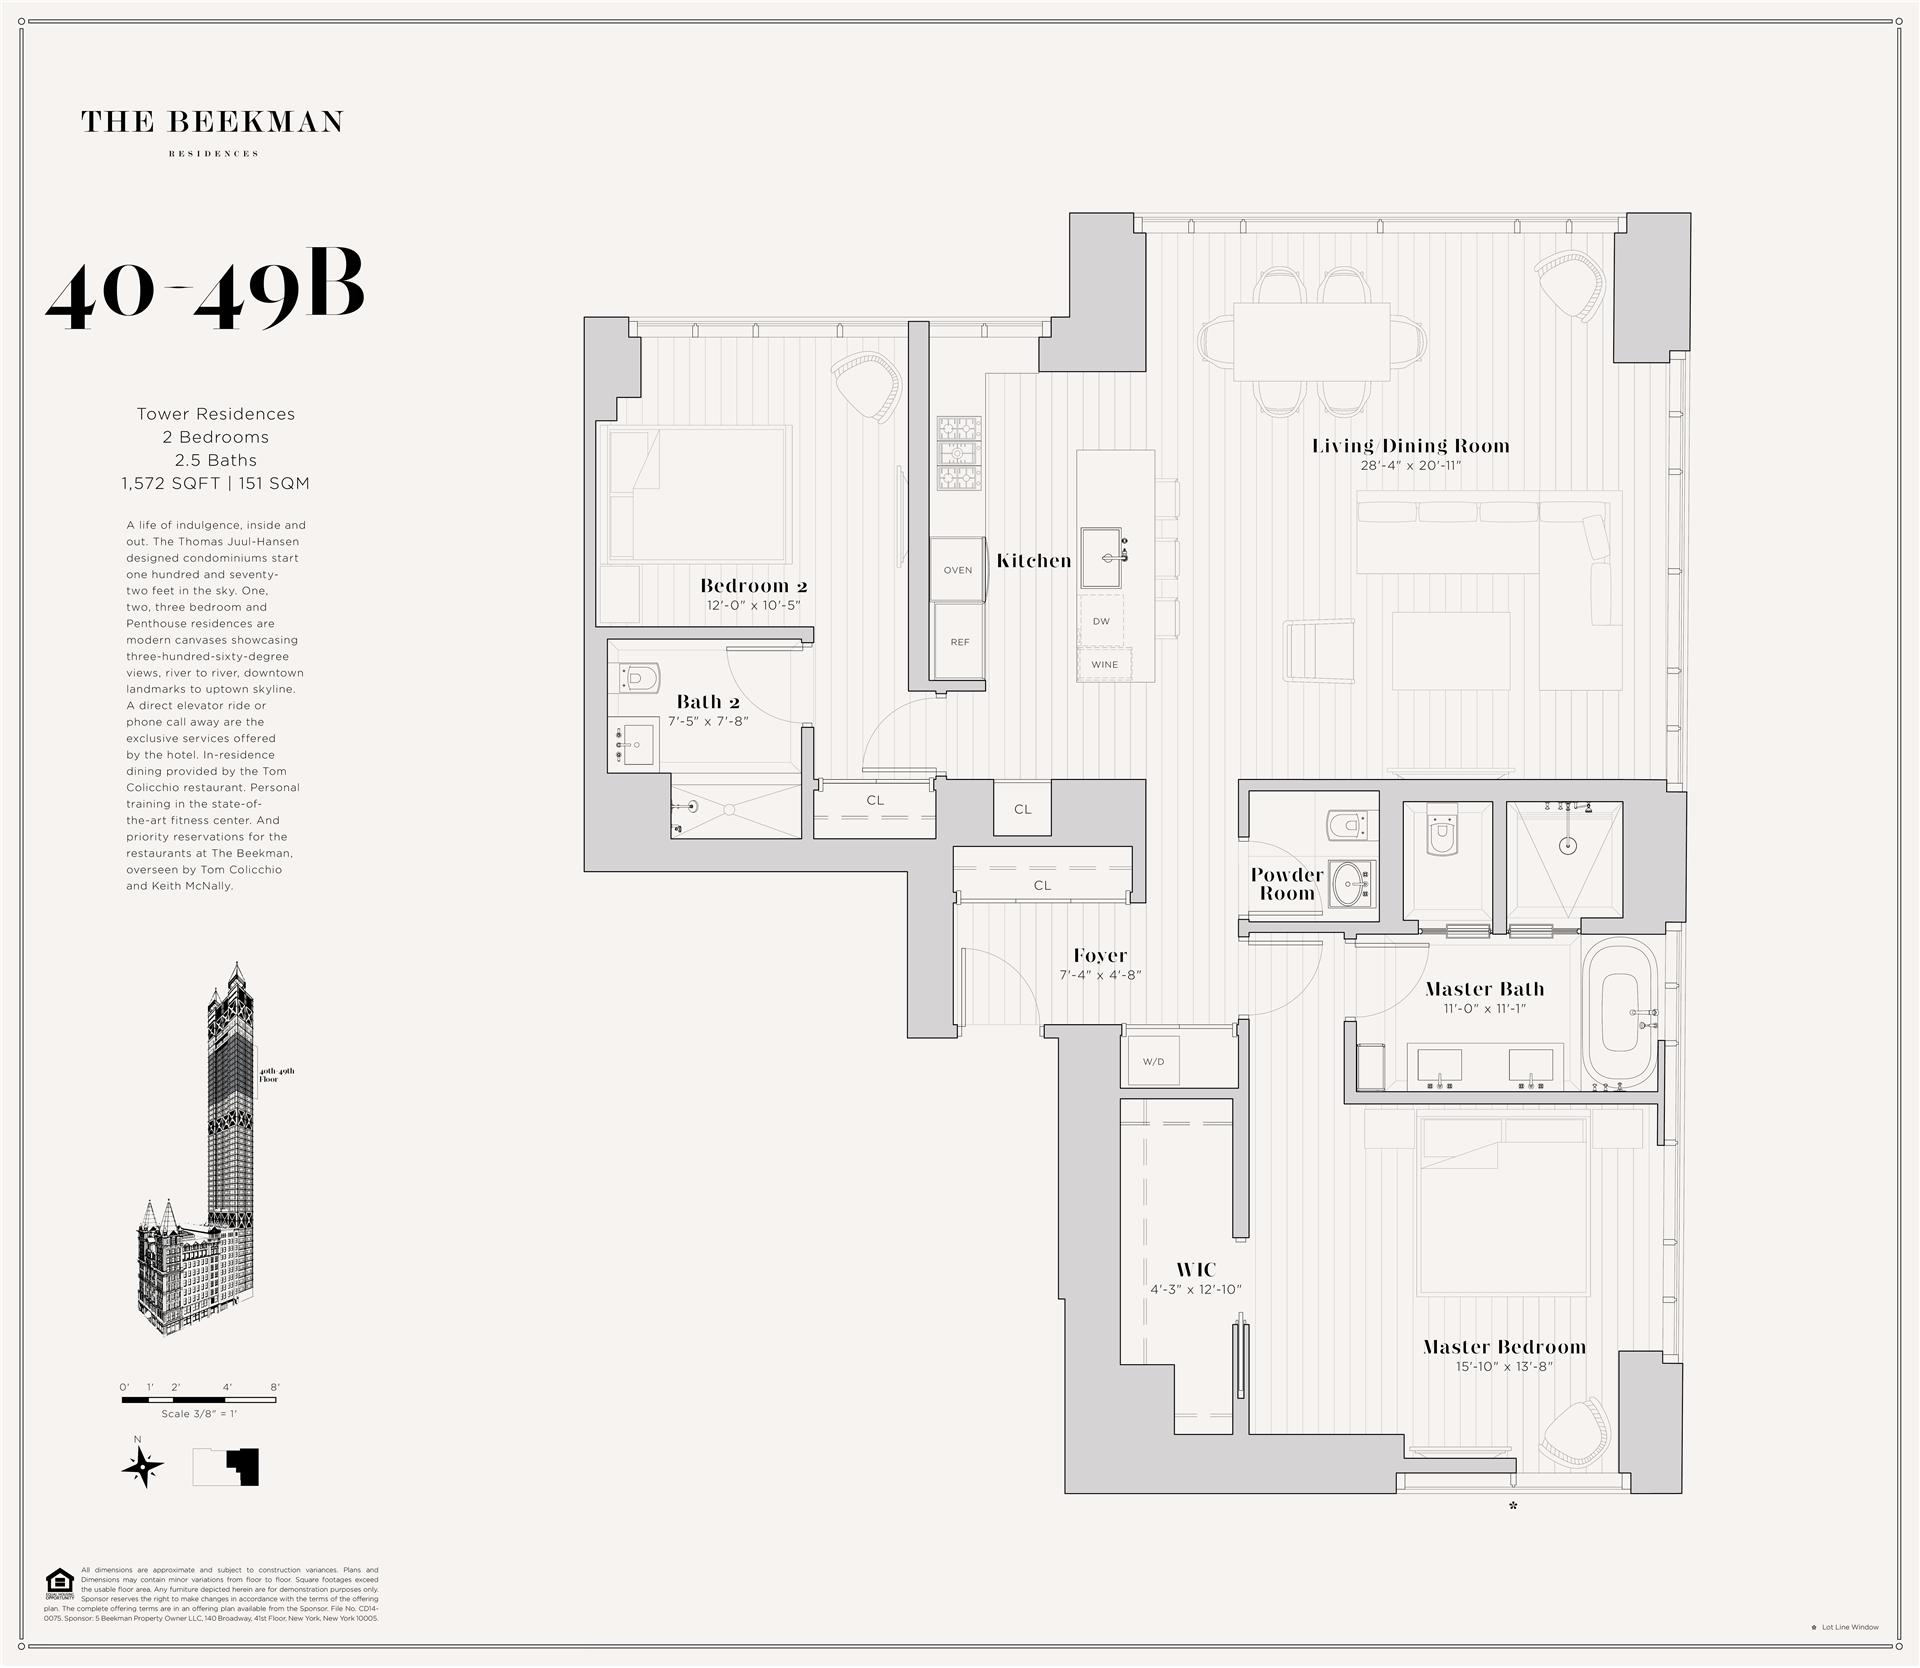 Floor plan of The Beekman Residences, 5 Beekman St, 41B - Financial District, New York